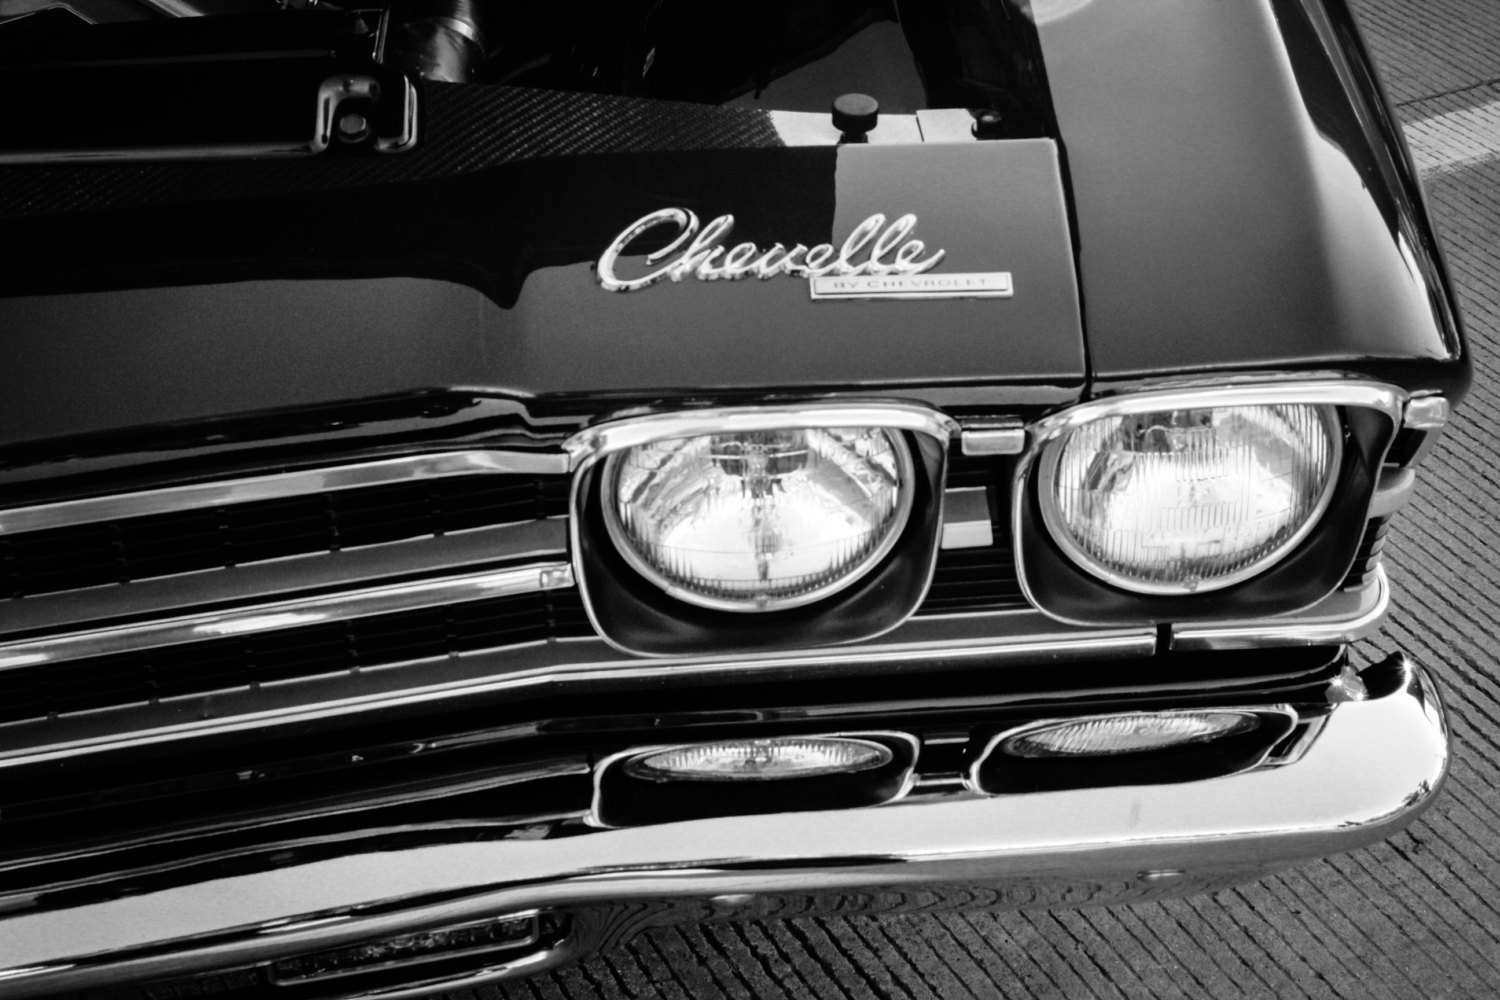 Chevy Chevelle Car Photography Automotive Classic Car Muscle